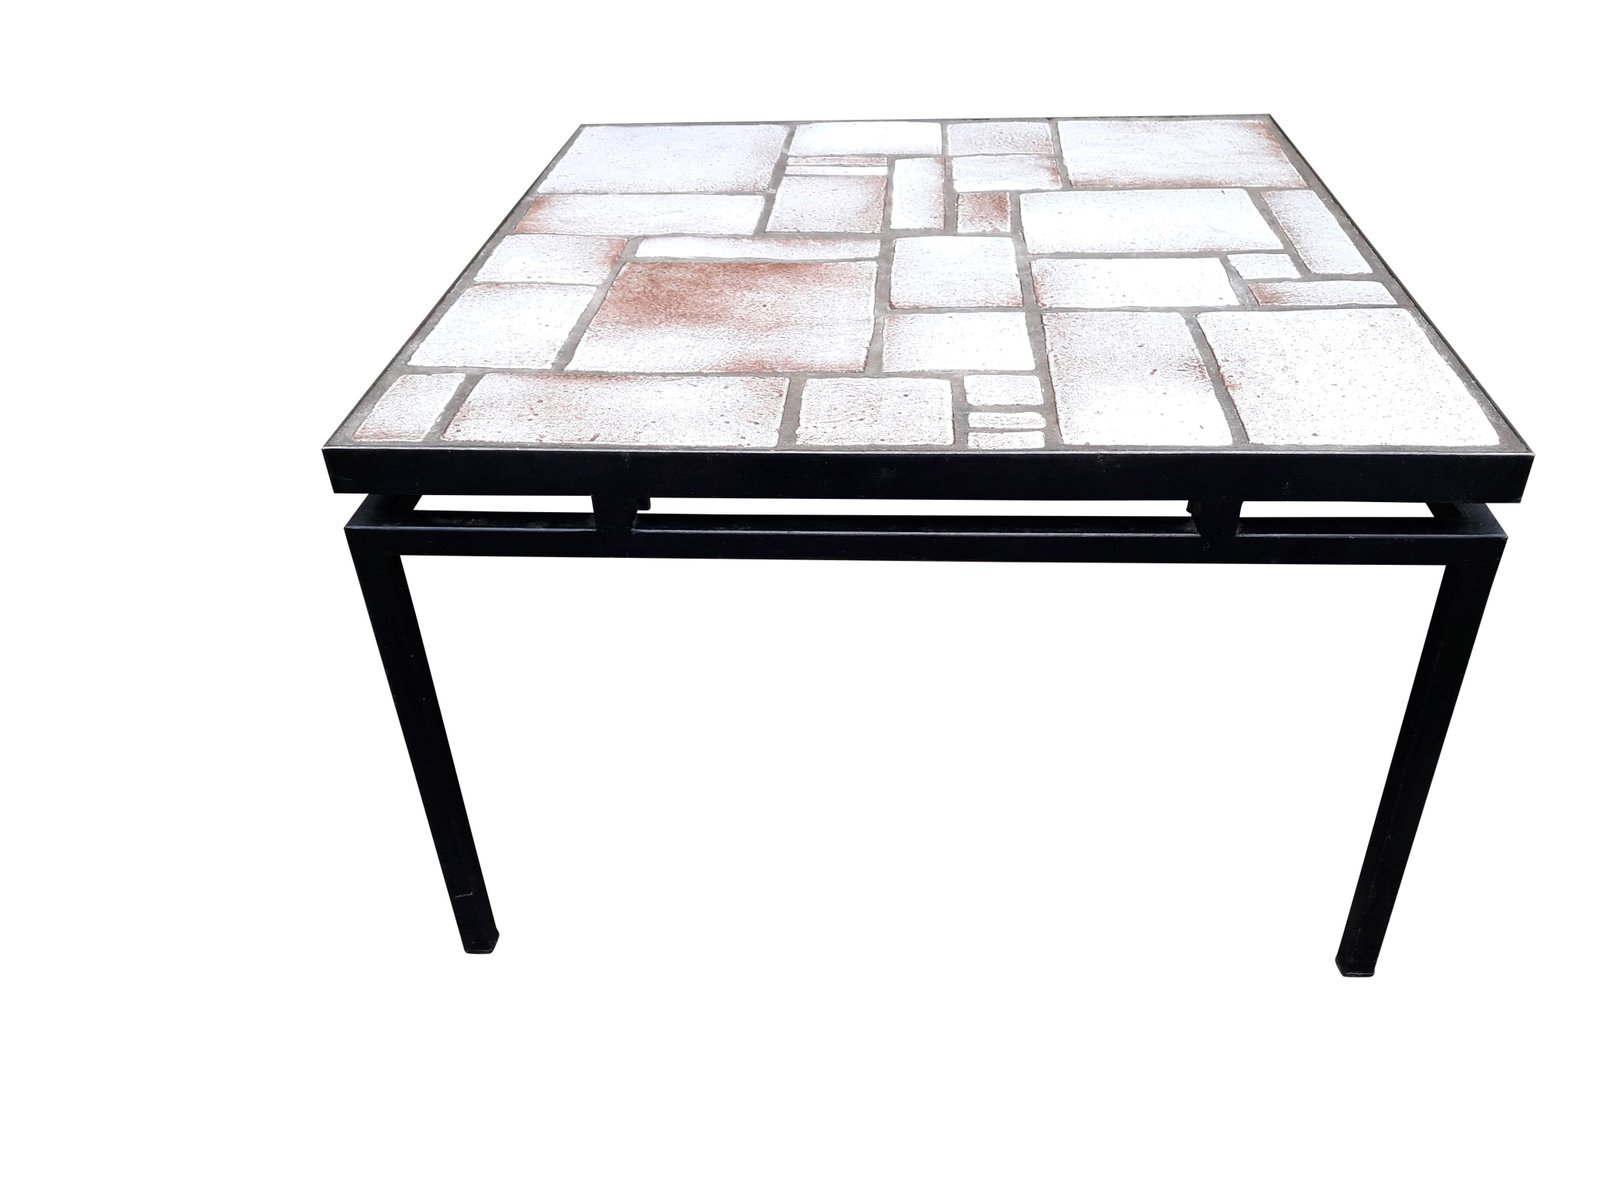 MidCentury White and Beige Ceramic Coffee Table on Painted Metal